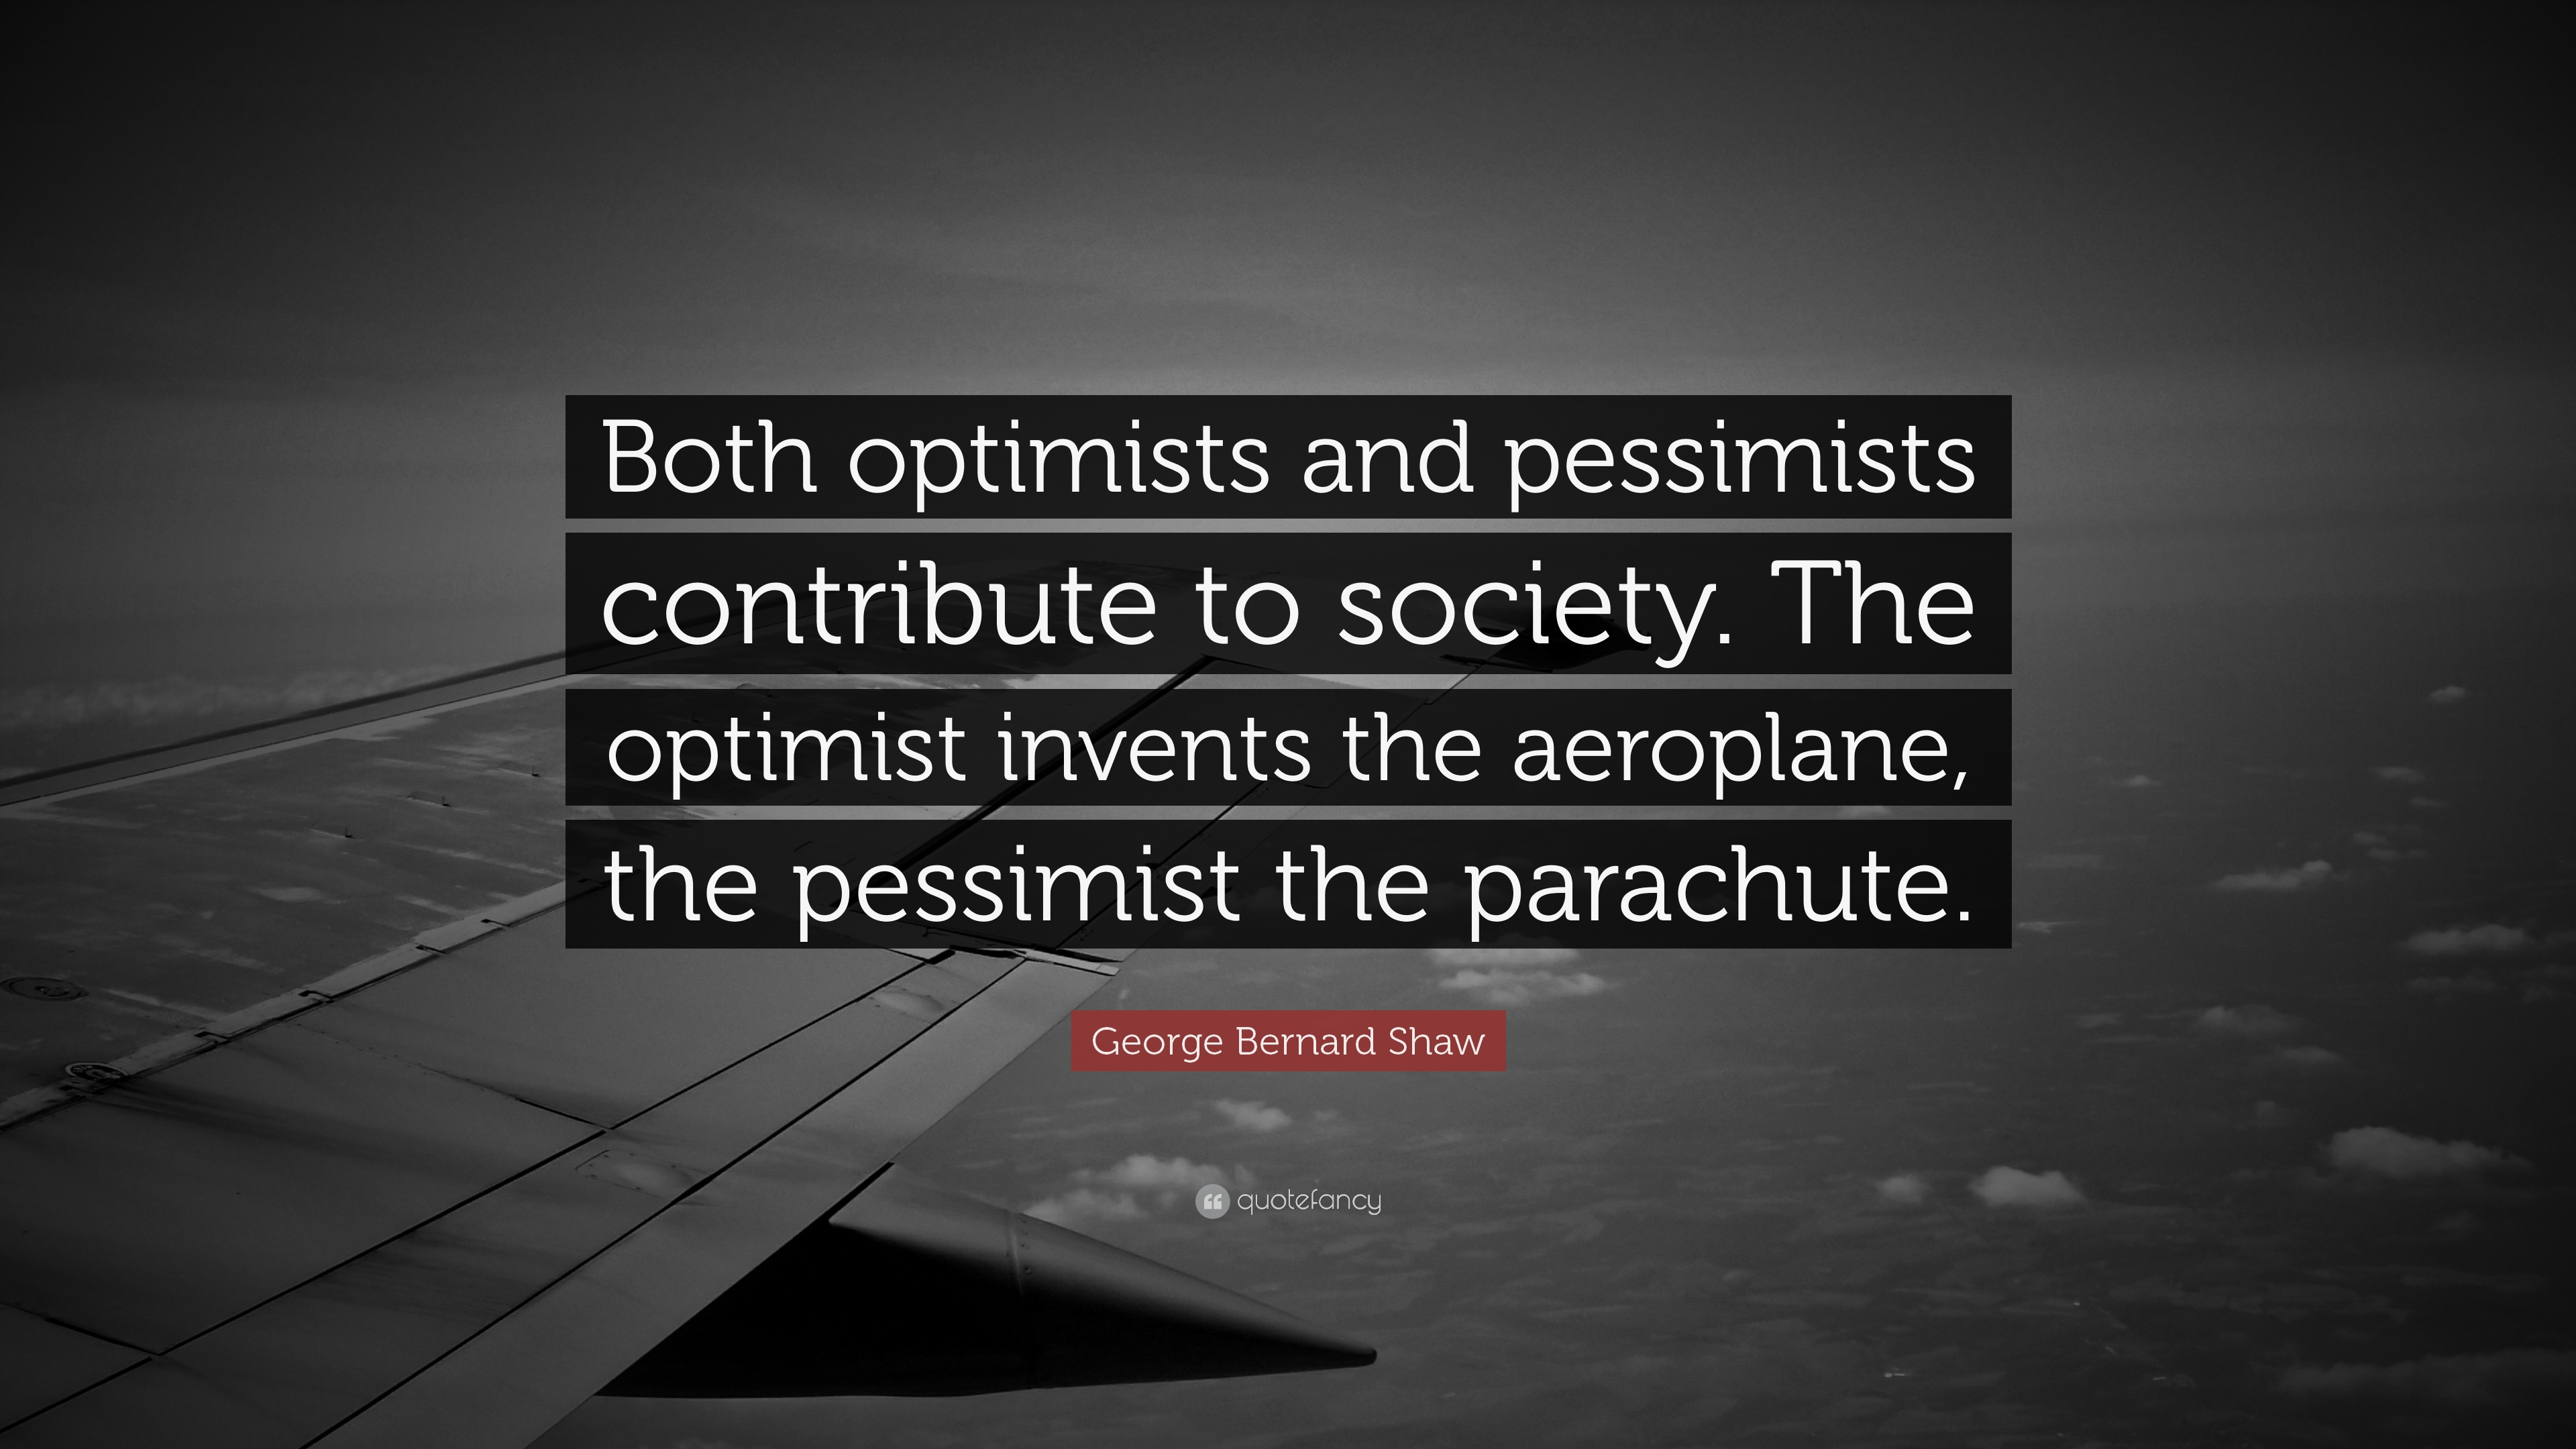 george bernard shaw quote both optimists and pessimists george bernard shaw quote both optimists and pessimists contribute to society the optimist